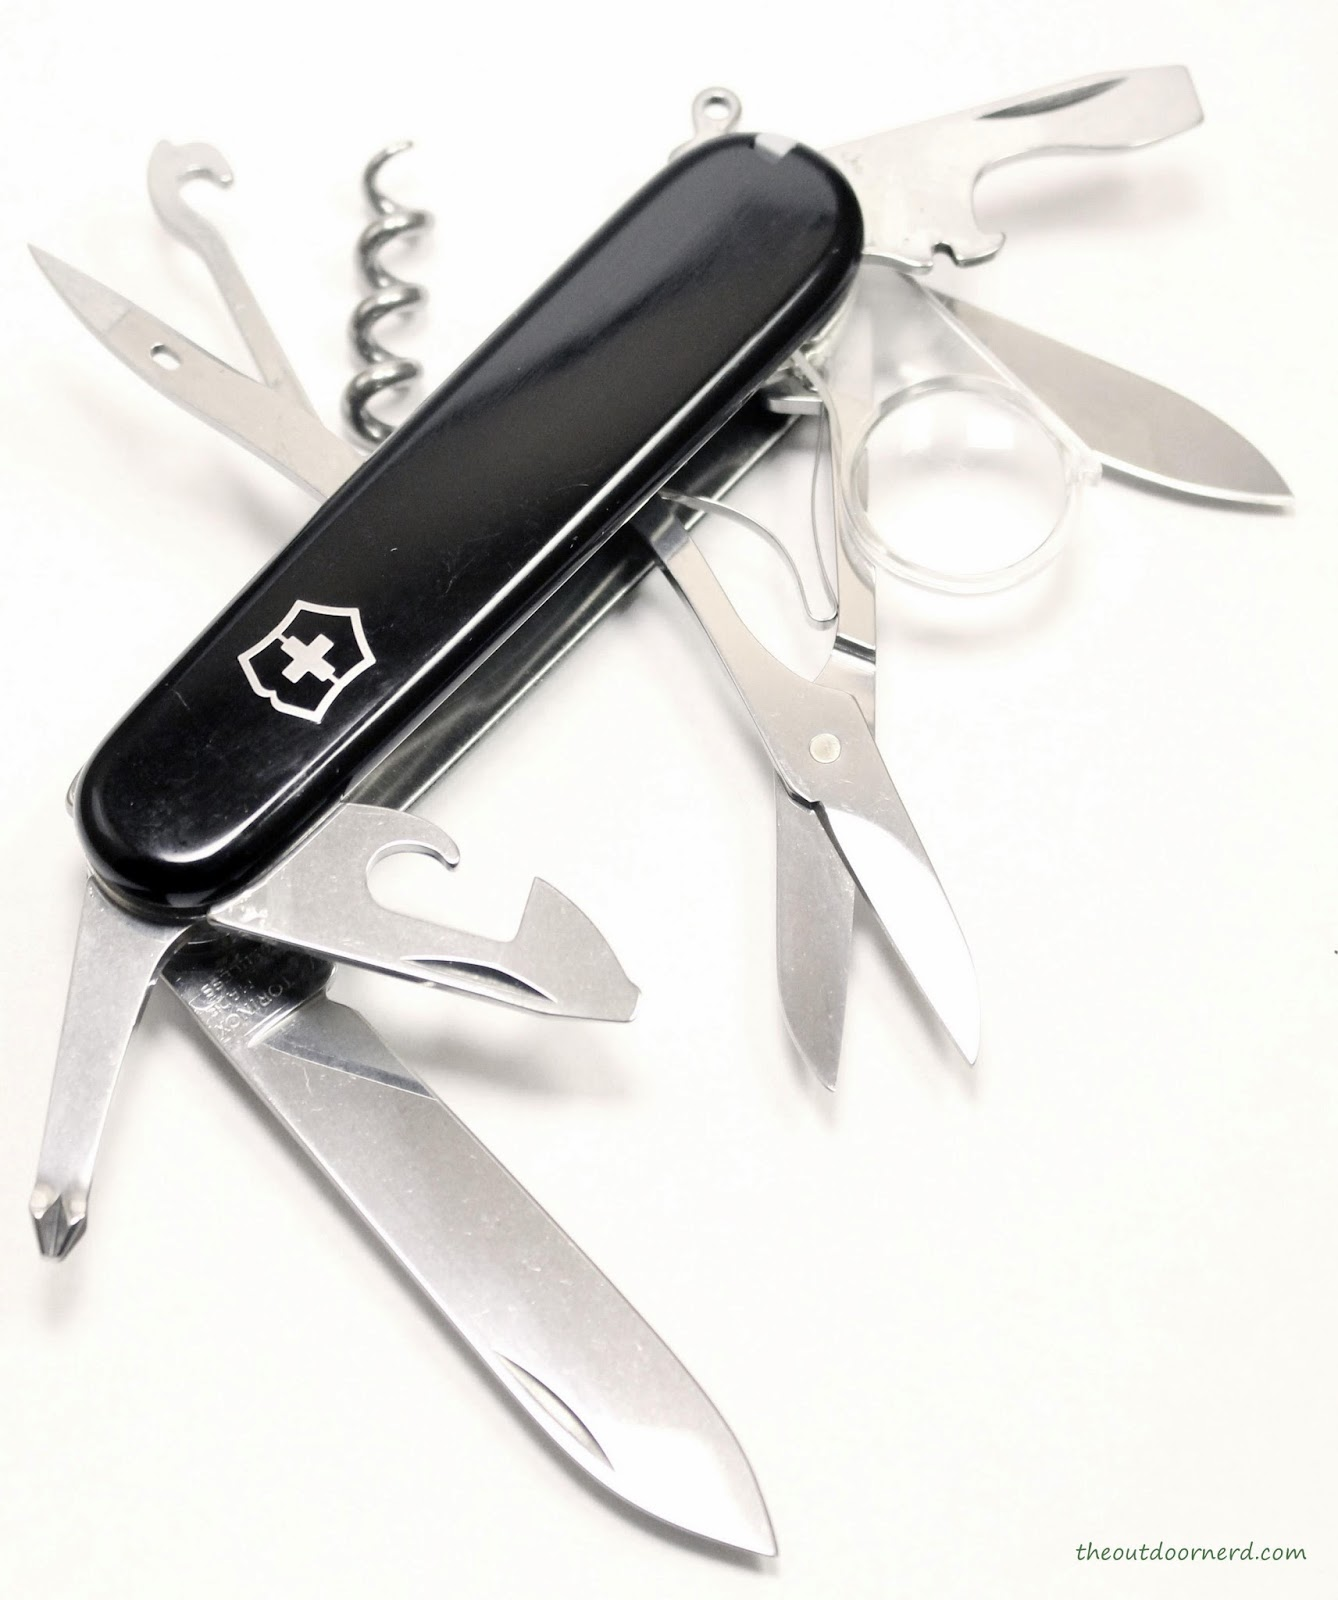 Victorinox Roundup: Explorer 1 of 4